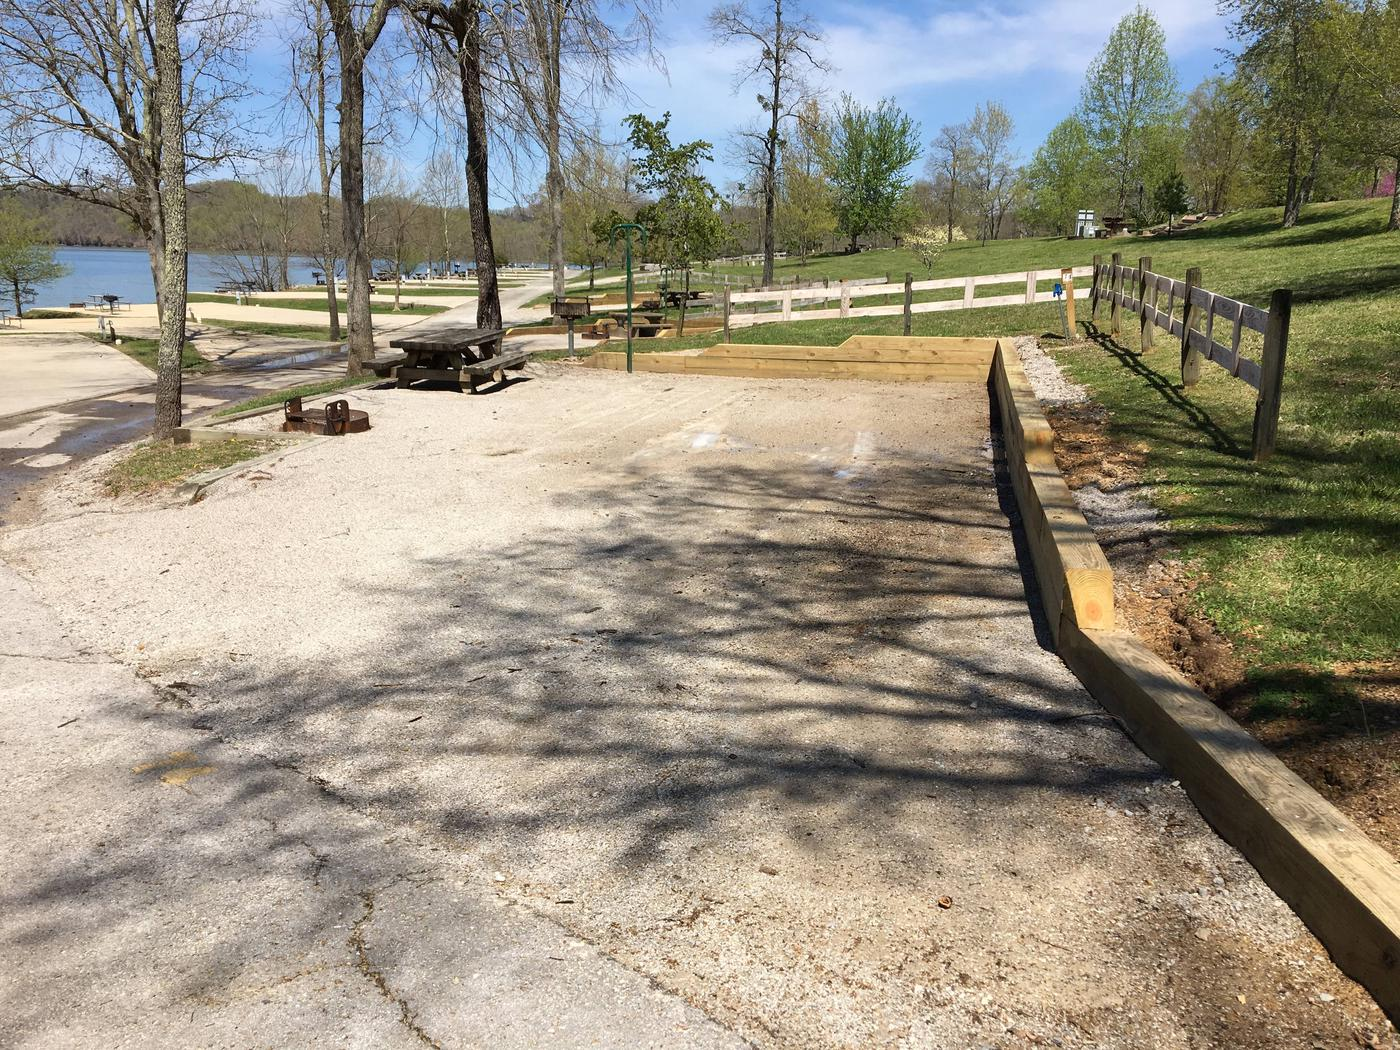 LILLYDALE CAMPGROUND SITE # 74 RENOVATED SPRING 2019LILLYDALE CAMPGROUND SITE # 74